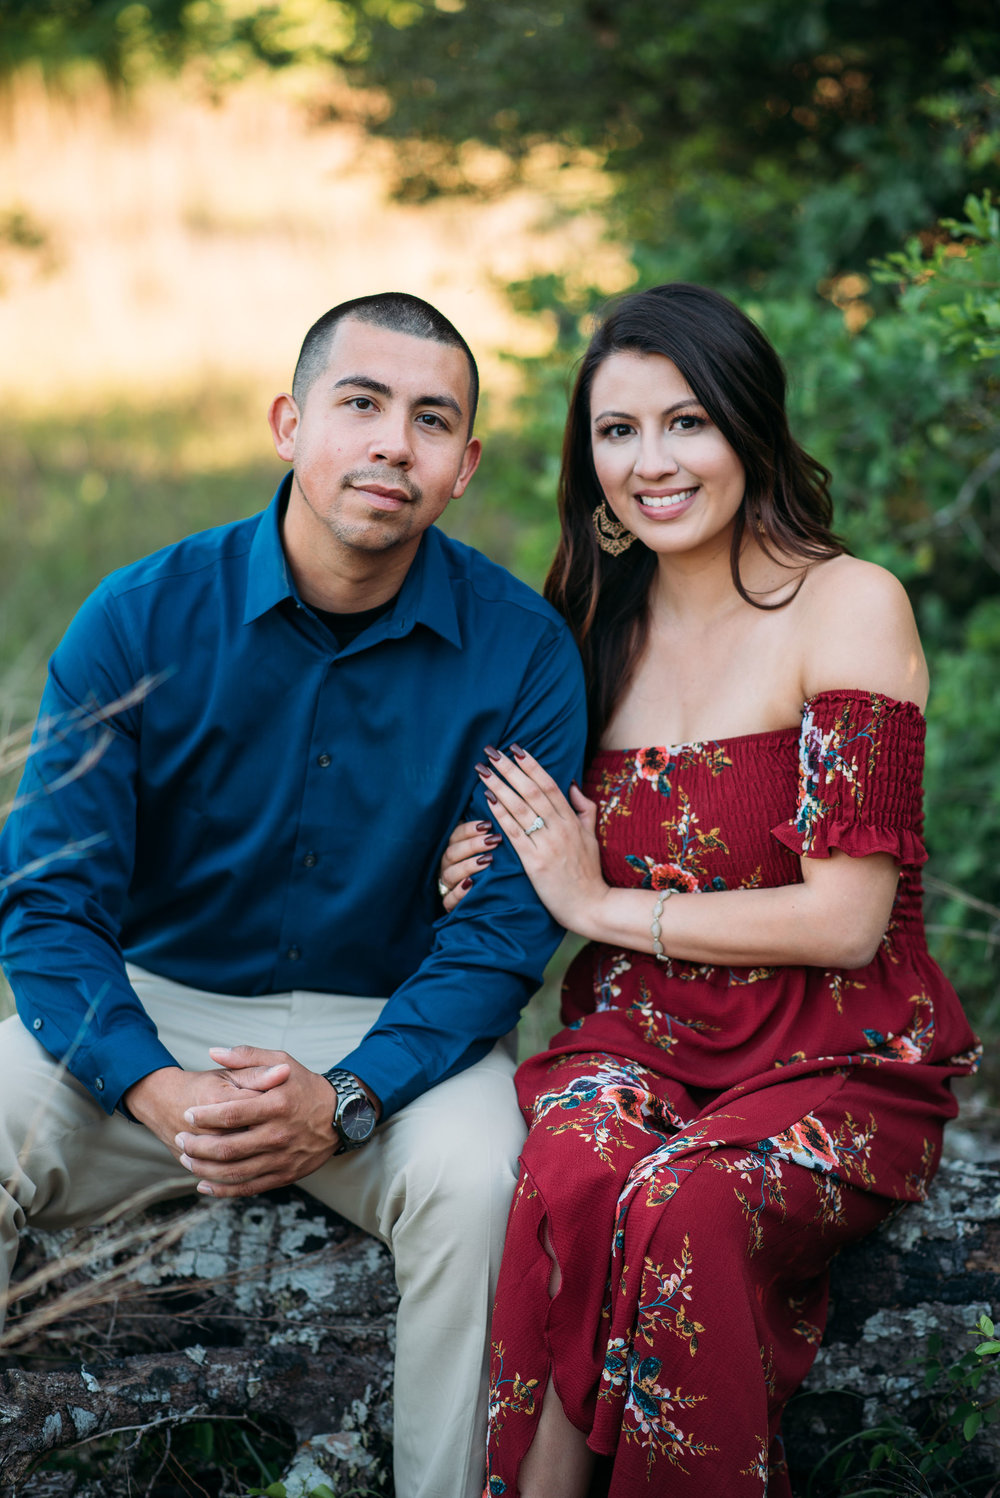 Aggie_Engagement_CollegeStation_LickCreekPark_16.jpg